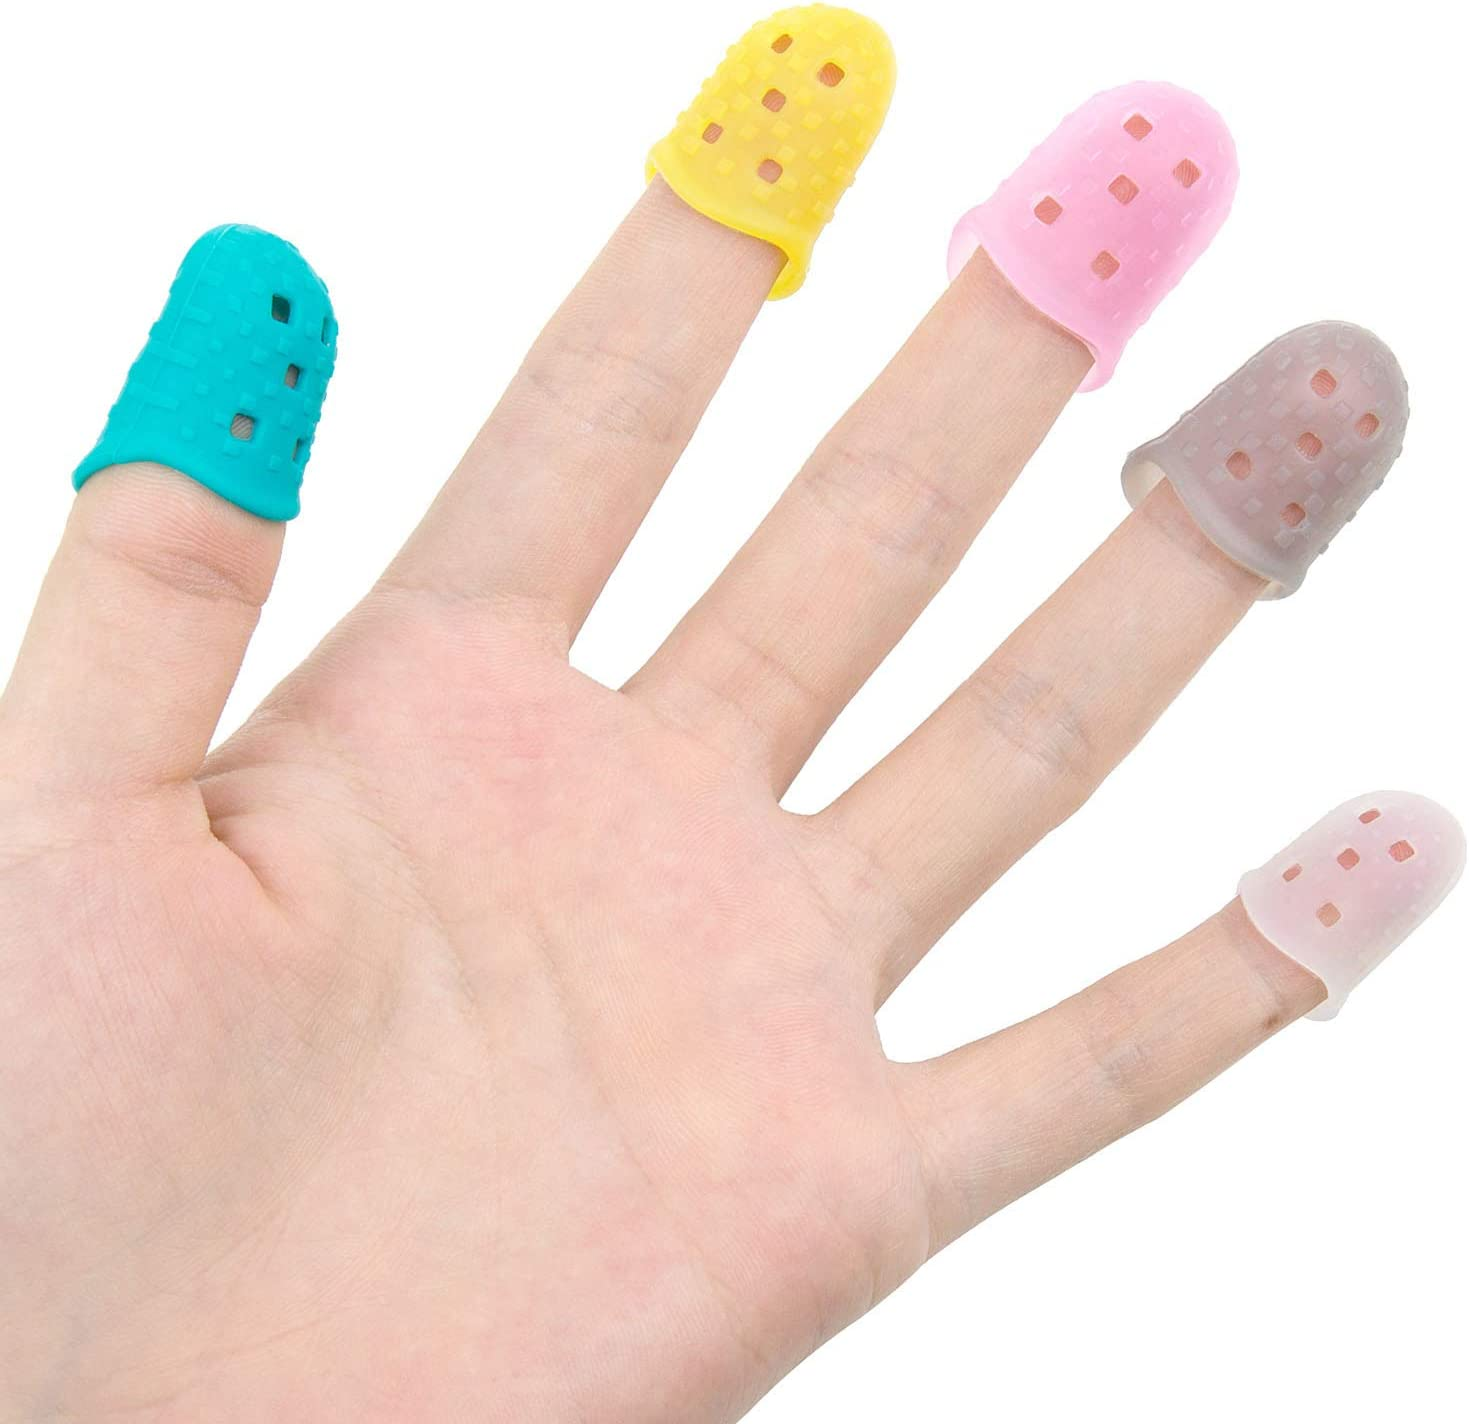 Multicolor 5 Sizes Jolintek 50 Pieces Fingertip Protectors Guitar Finger Guards Silicone Anti-Slip Finger Protection Covers Cap or Stringed Instruments Mandolin Counting Sewing Paperwork